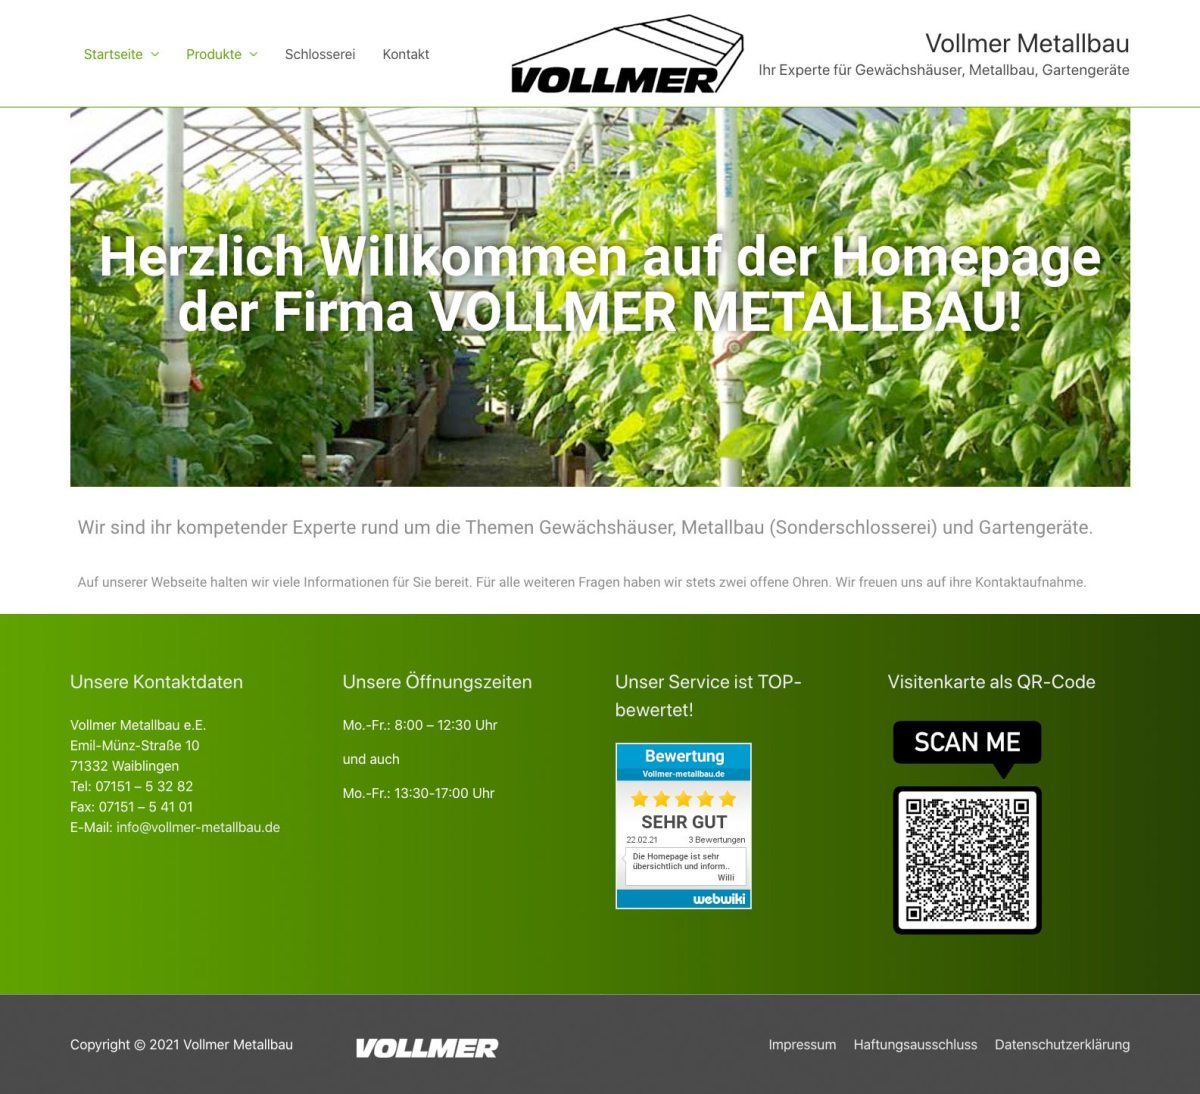 Vollmer Metallbau